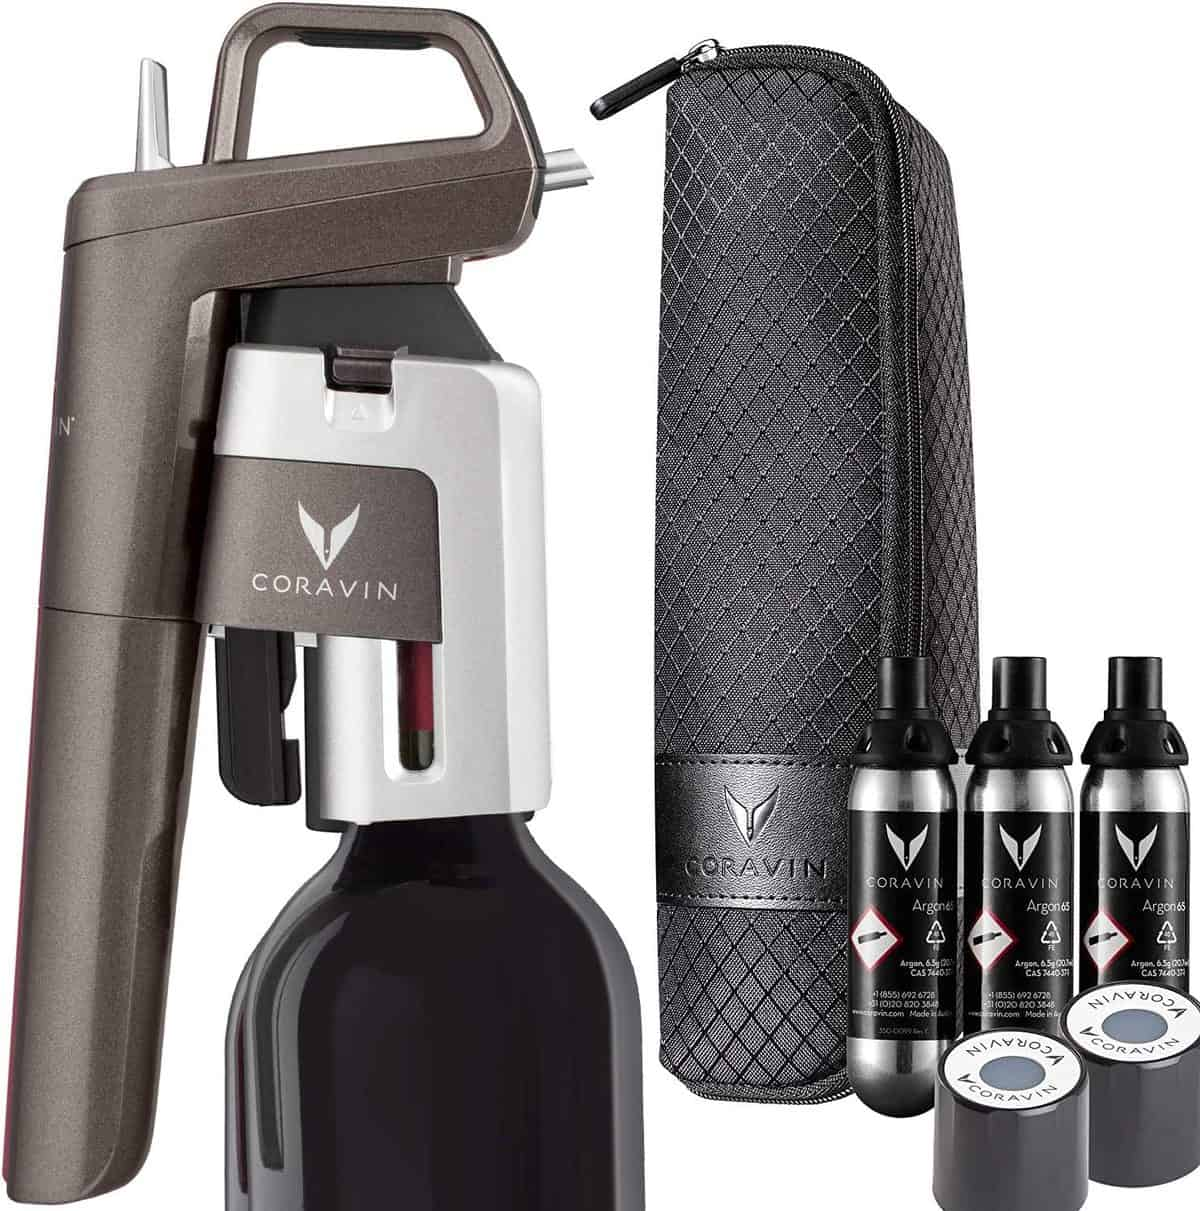 Coravin Advanced Wine Bottle Opener and Preservation System